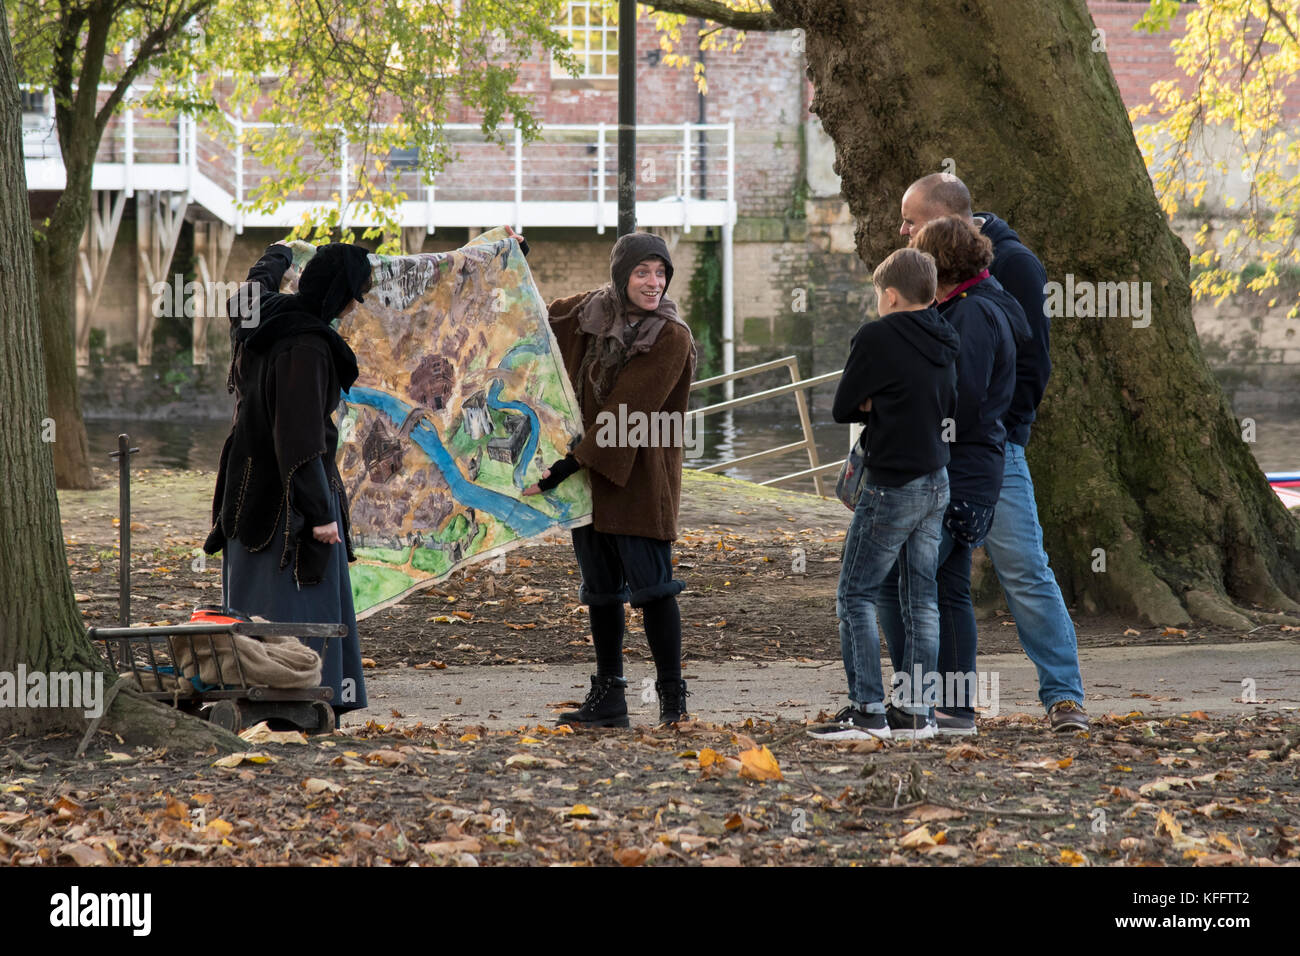 Street entertainers and audience in Tower Gardens, York - Stock Image